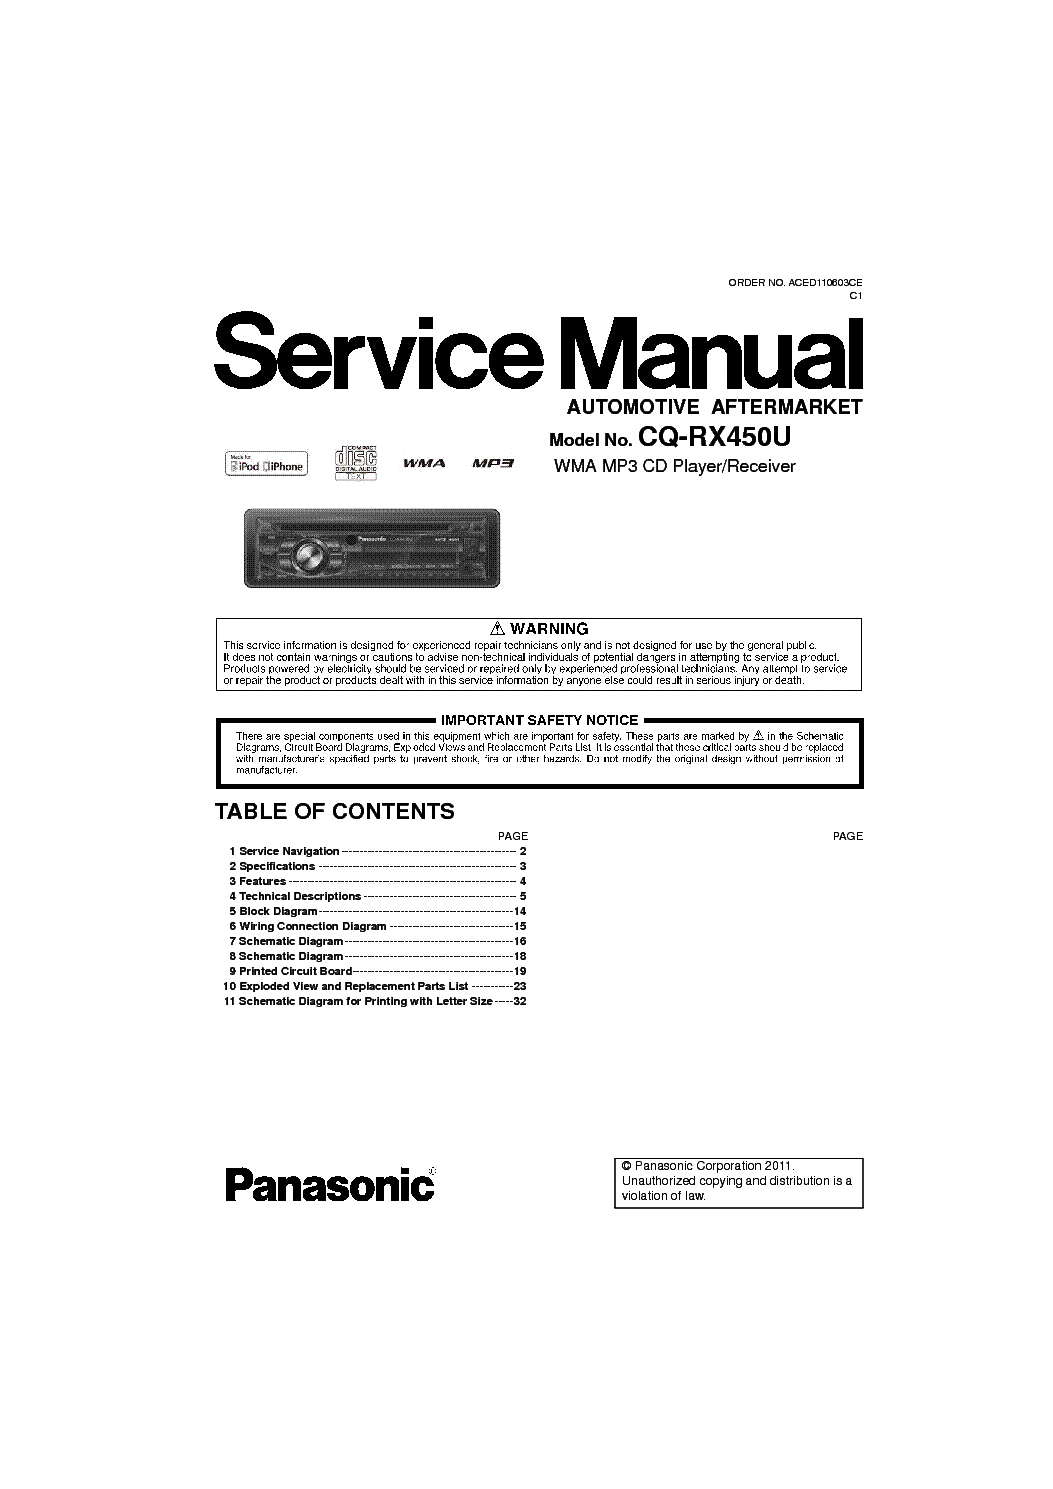 panasonic cq rx450u wiring diagram 34 wiring diagram